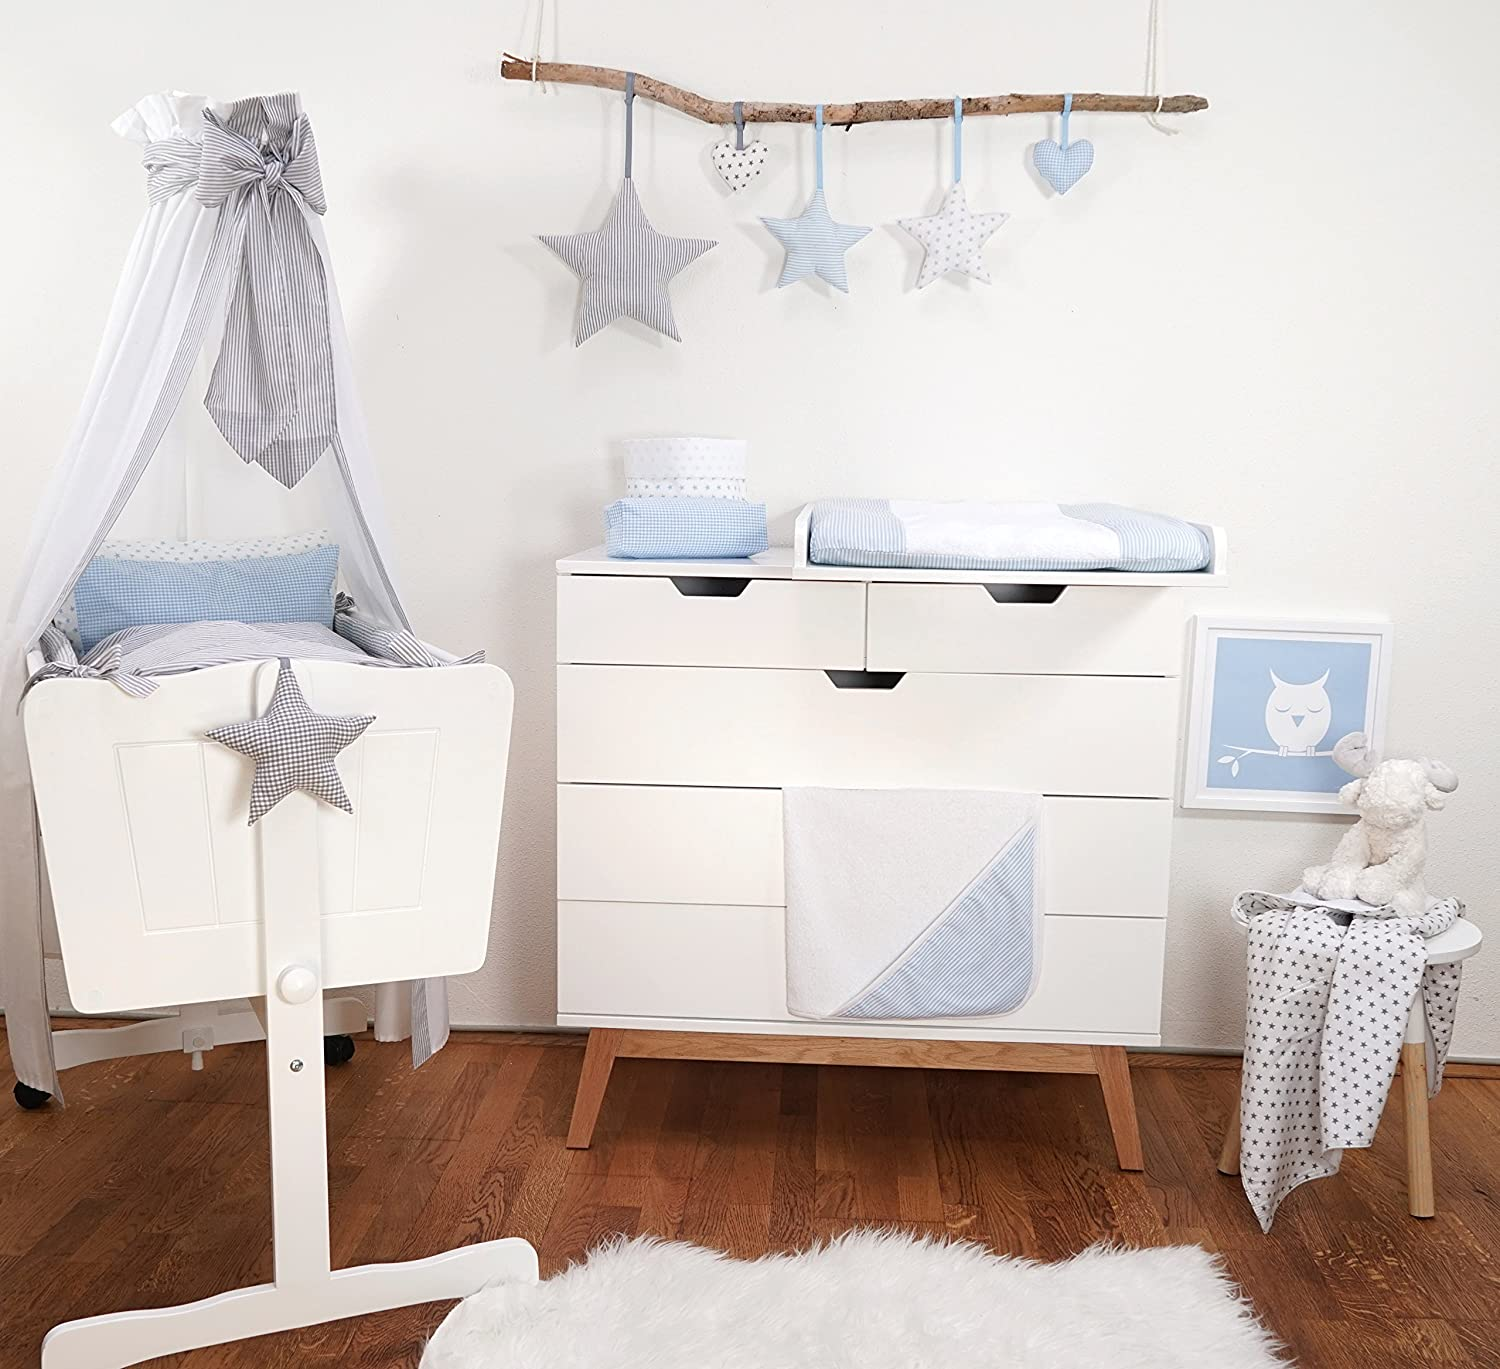 Oeko Tex Standard 100/ Sugarapple Cot Bumper All Round Cot Bumper /& Cot Bumper with over 35/Fabric /Made in Germany l/änge 360/or 420/cm 100/% Cotton/ /For Baby /& Child